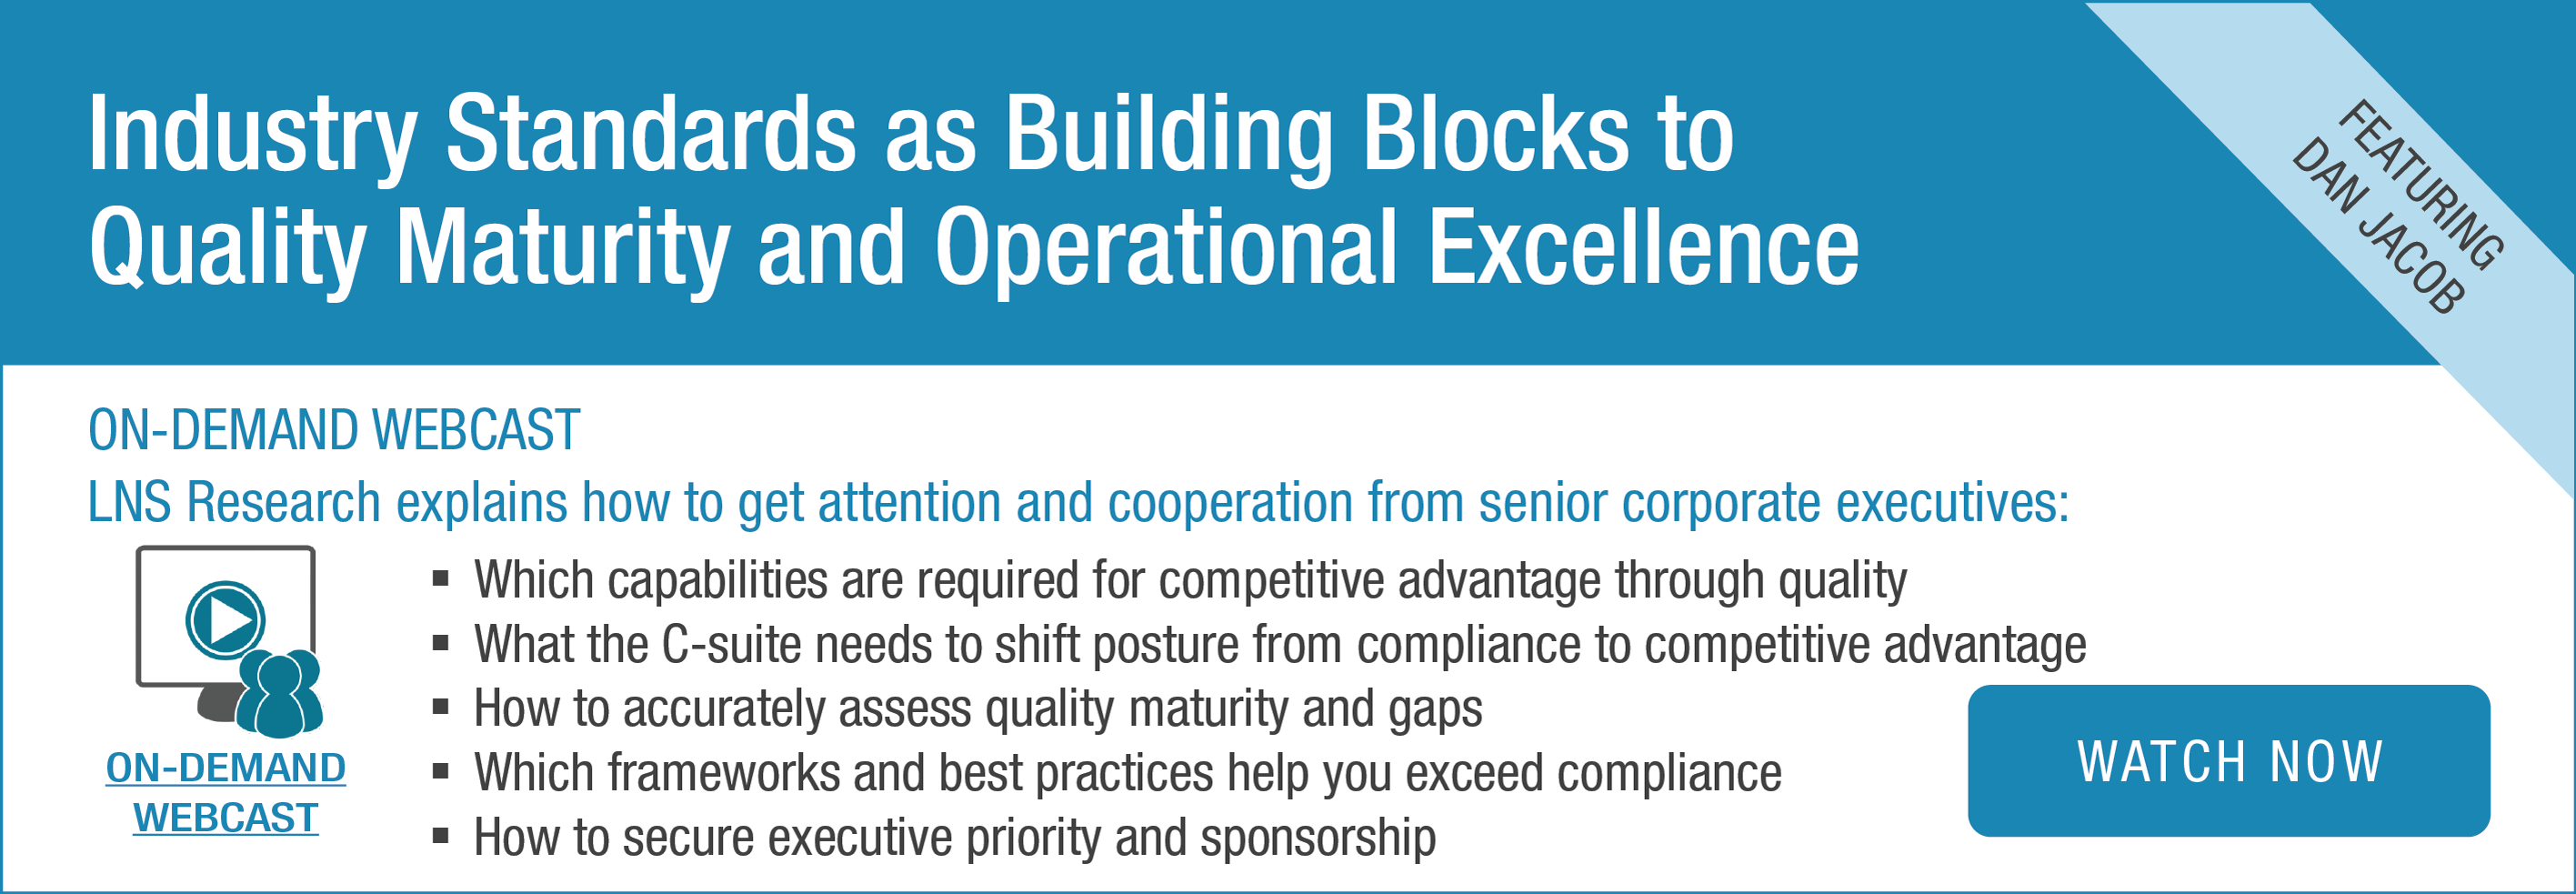 Webcast: Industry Standards as Building Blocks to Quality Maturity and Operational Excellence